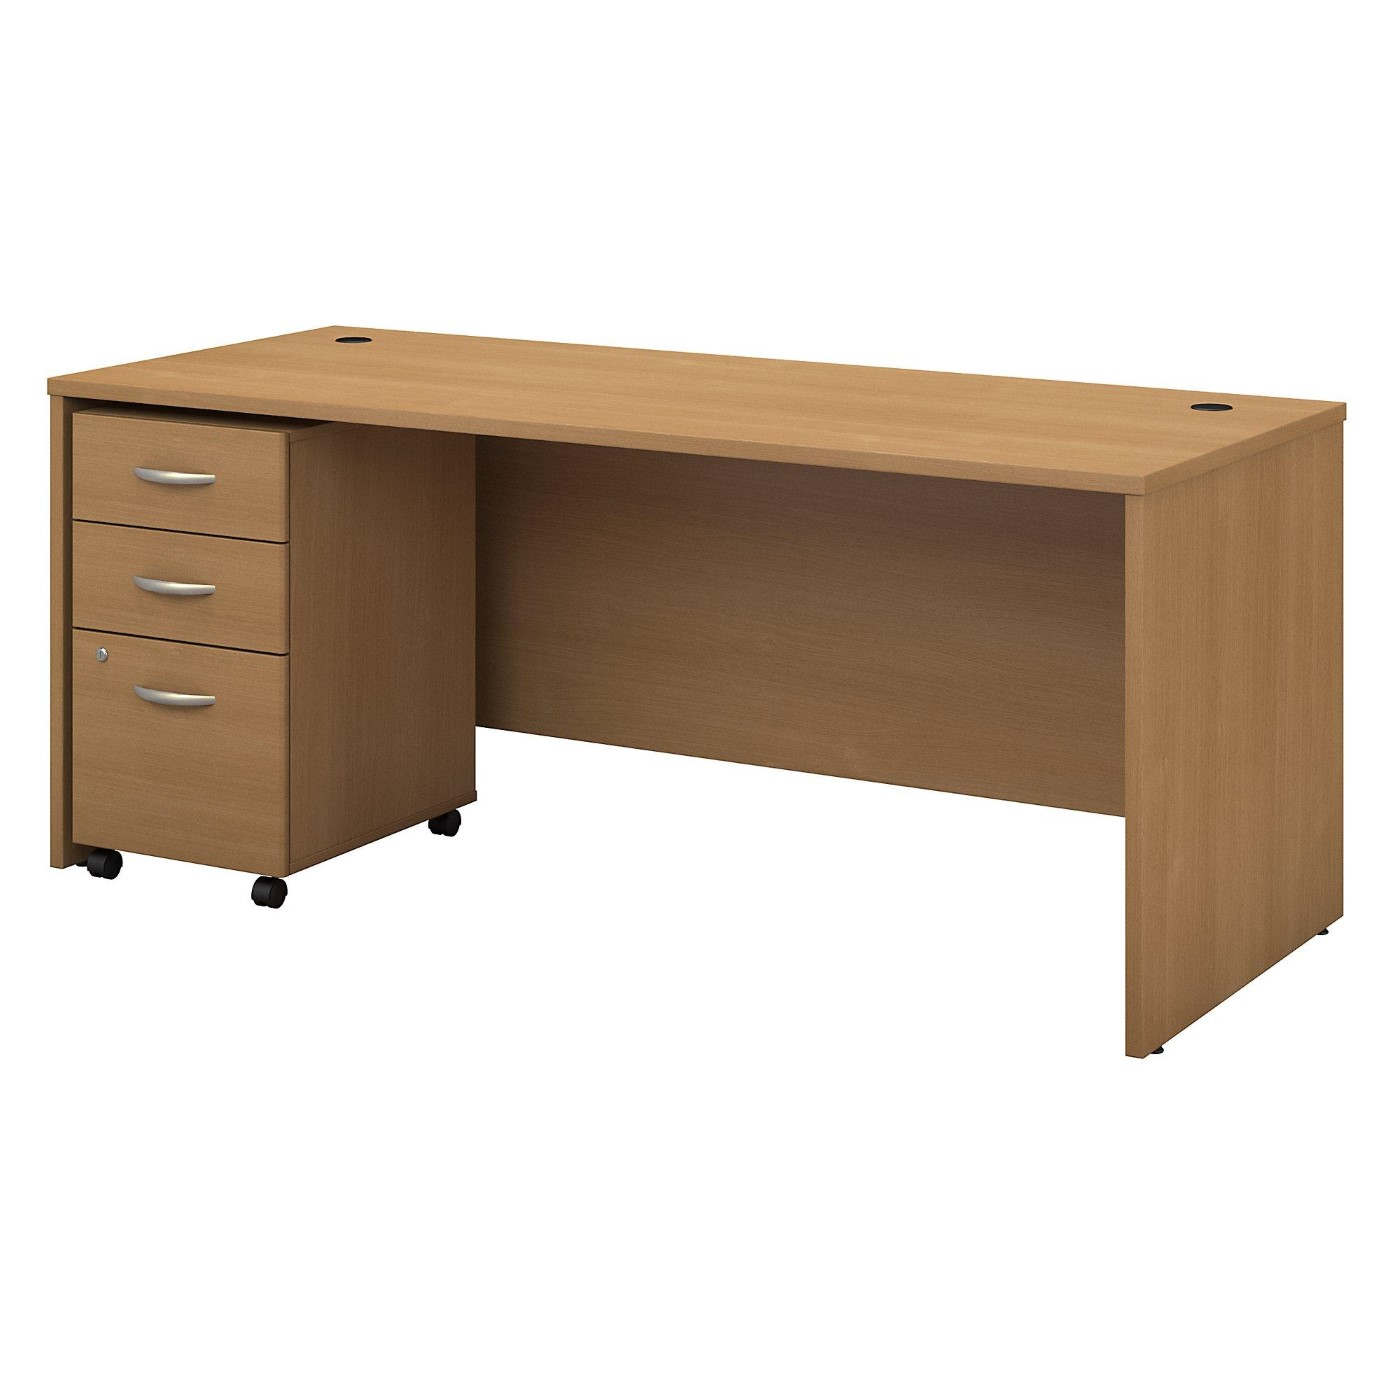 <font color=#c60><b>BUSH BUSINESS FURNITURE SERIES C 72W X 30D OFFICE DESK WITH MOBILE FILE CABINET. FREE SHIPPING</font></b>